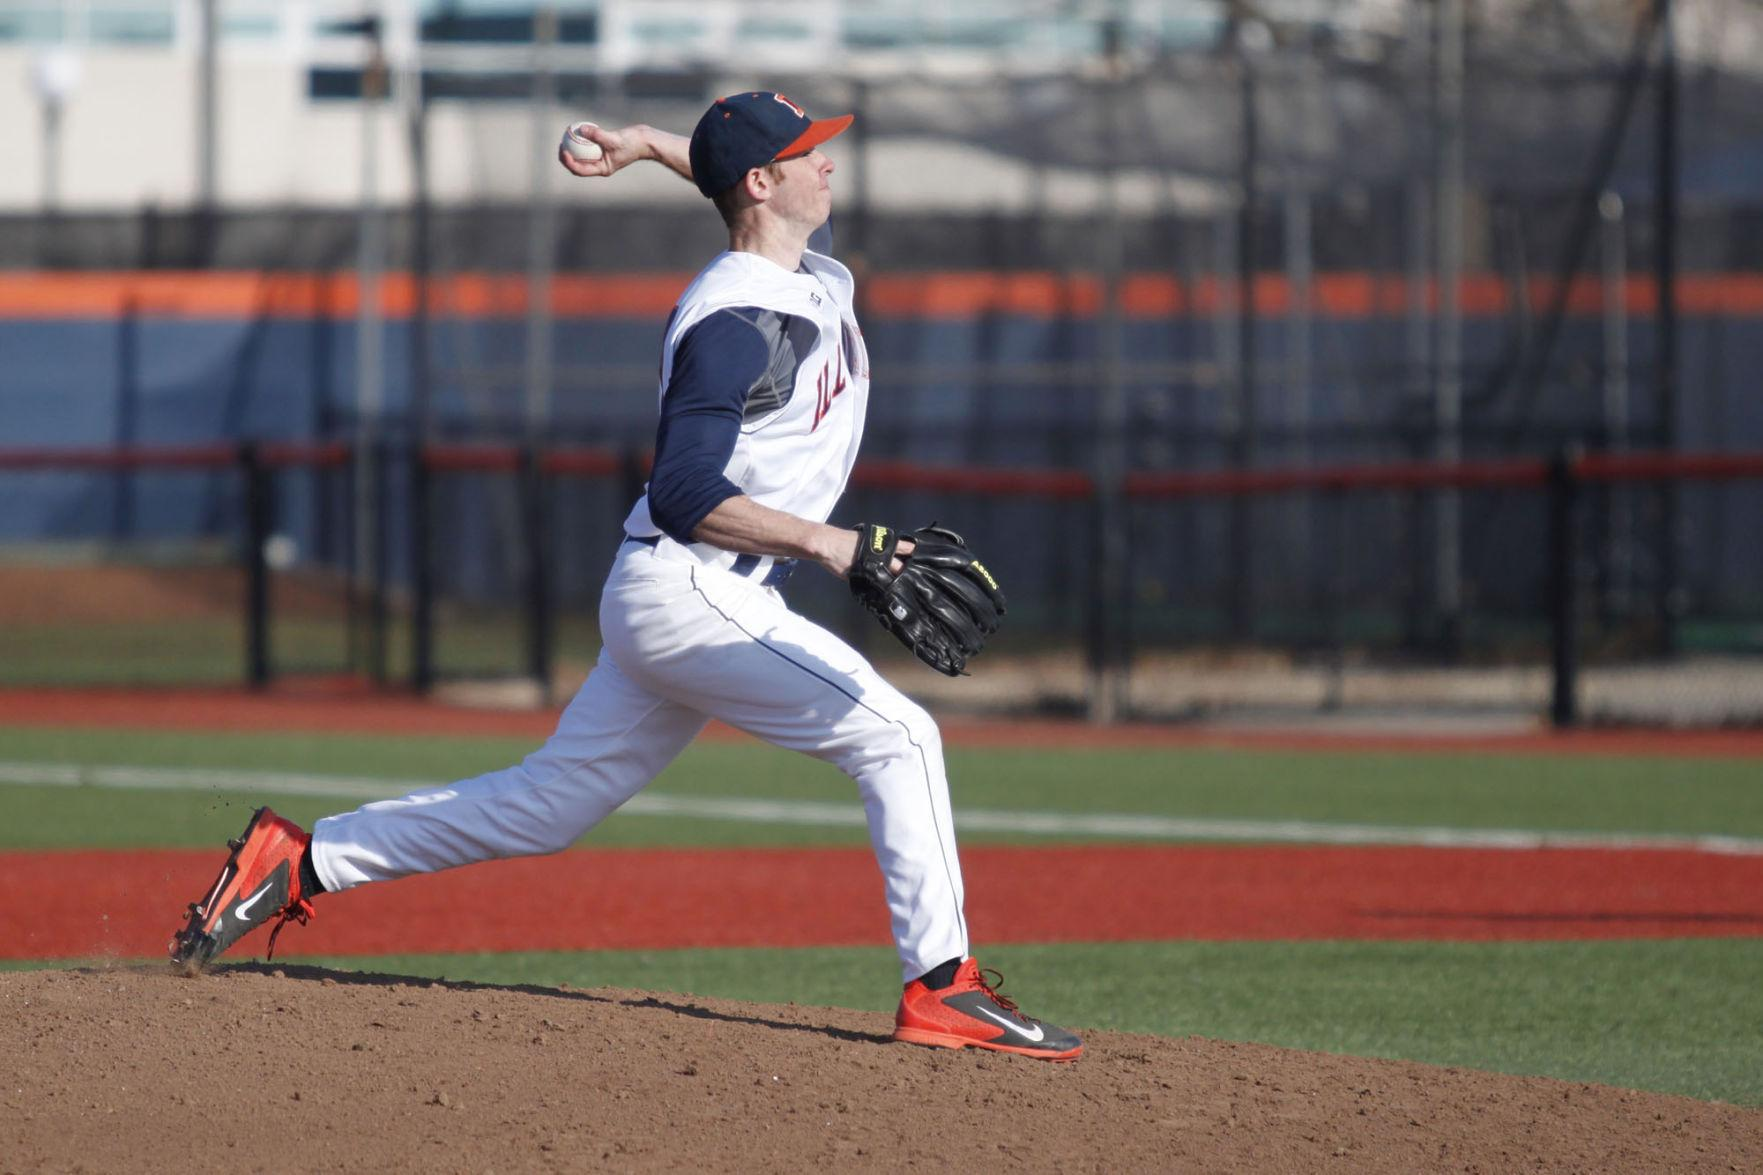 Illinois' Tyler Jay (11) pitches the ball during the game against Indiana State at Illinois Field on Mar. 18. The Illini's veteran team has led to high expectations for the upcoming season.